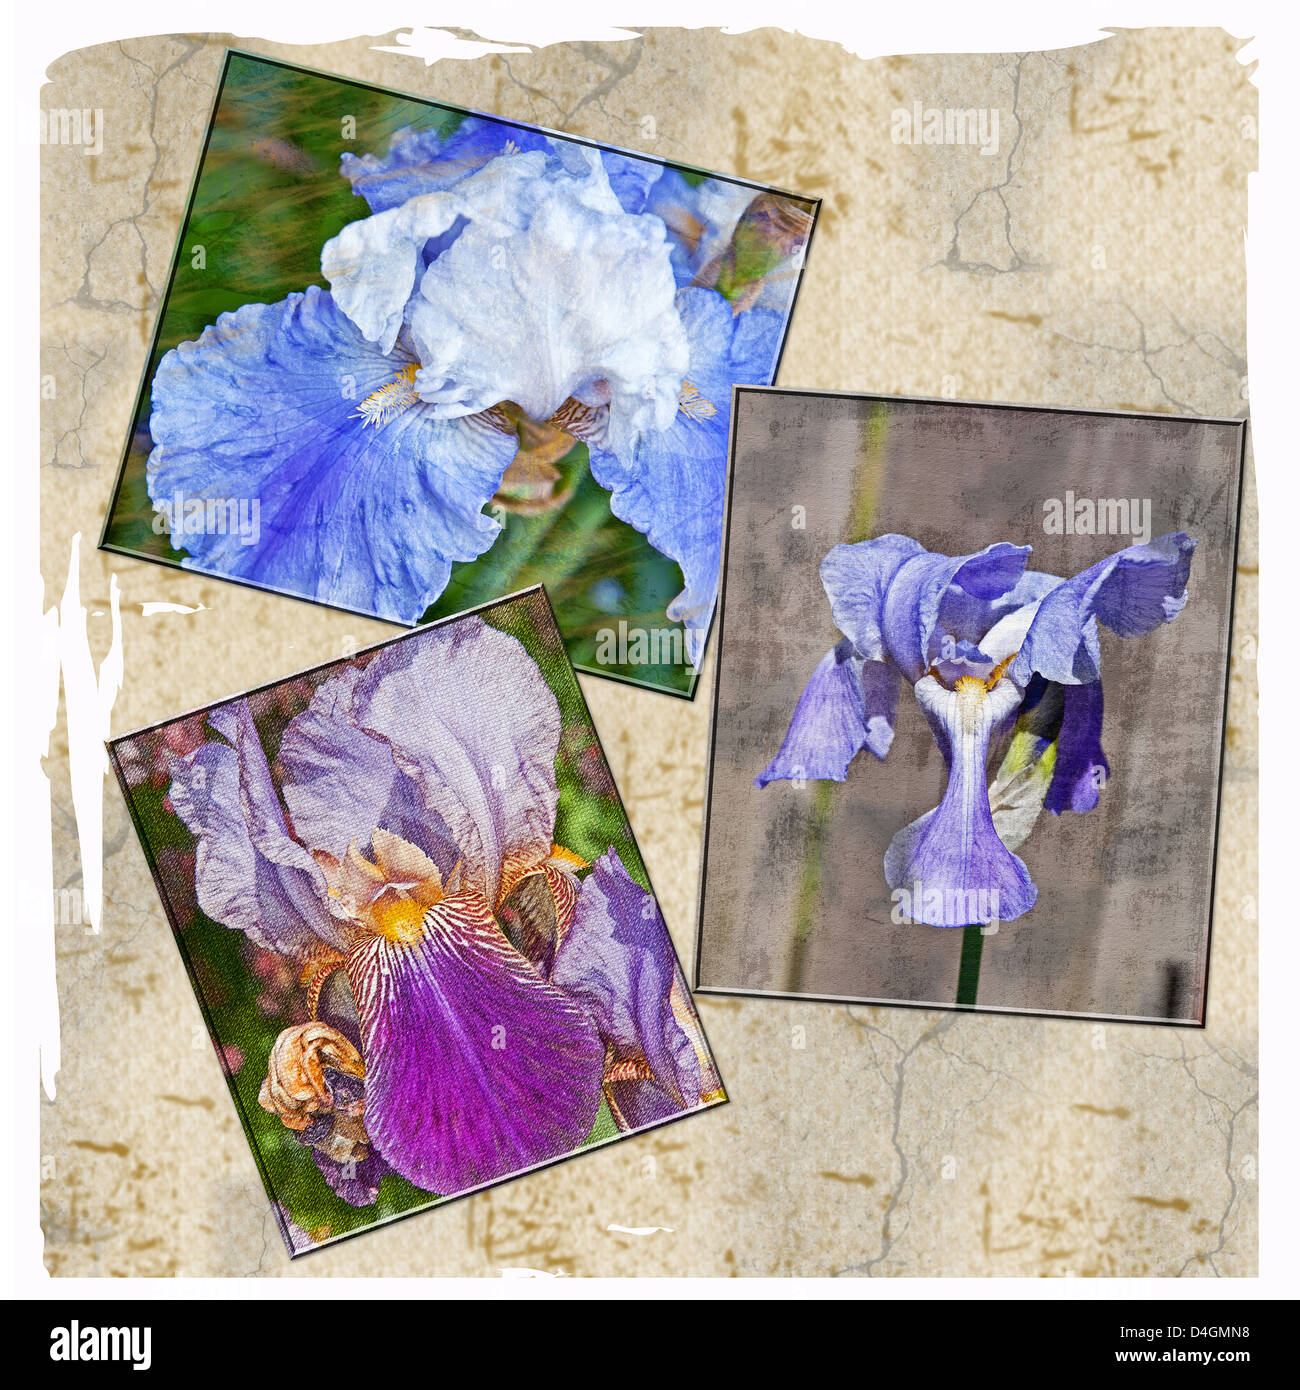 This is a collage of textured iris flowers bearded and japanese this is a collage of textured iris flowers bearded and japanese iris a set of 3 on an old parchment type background izmirmasajfo